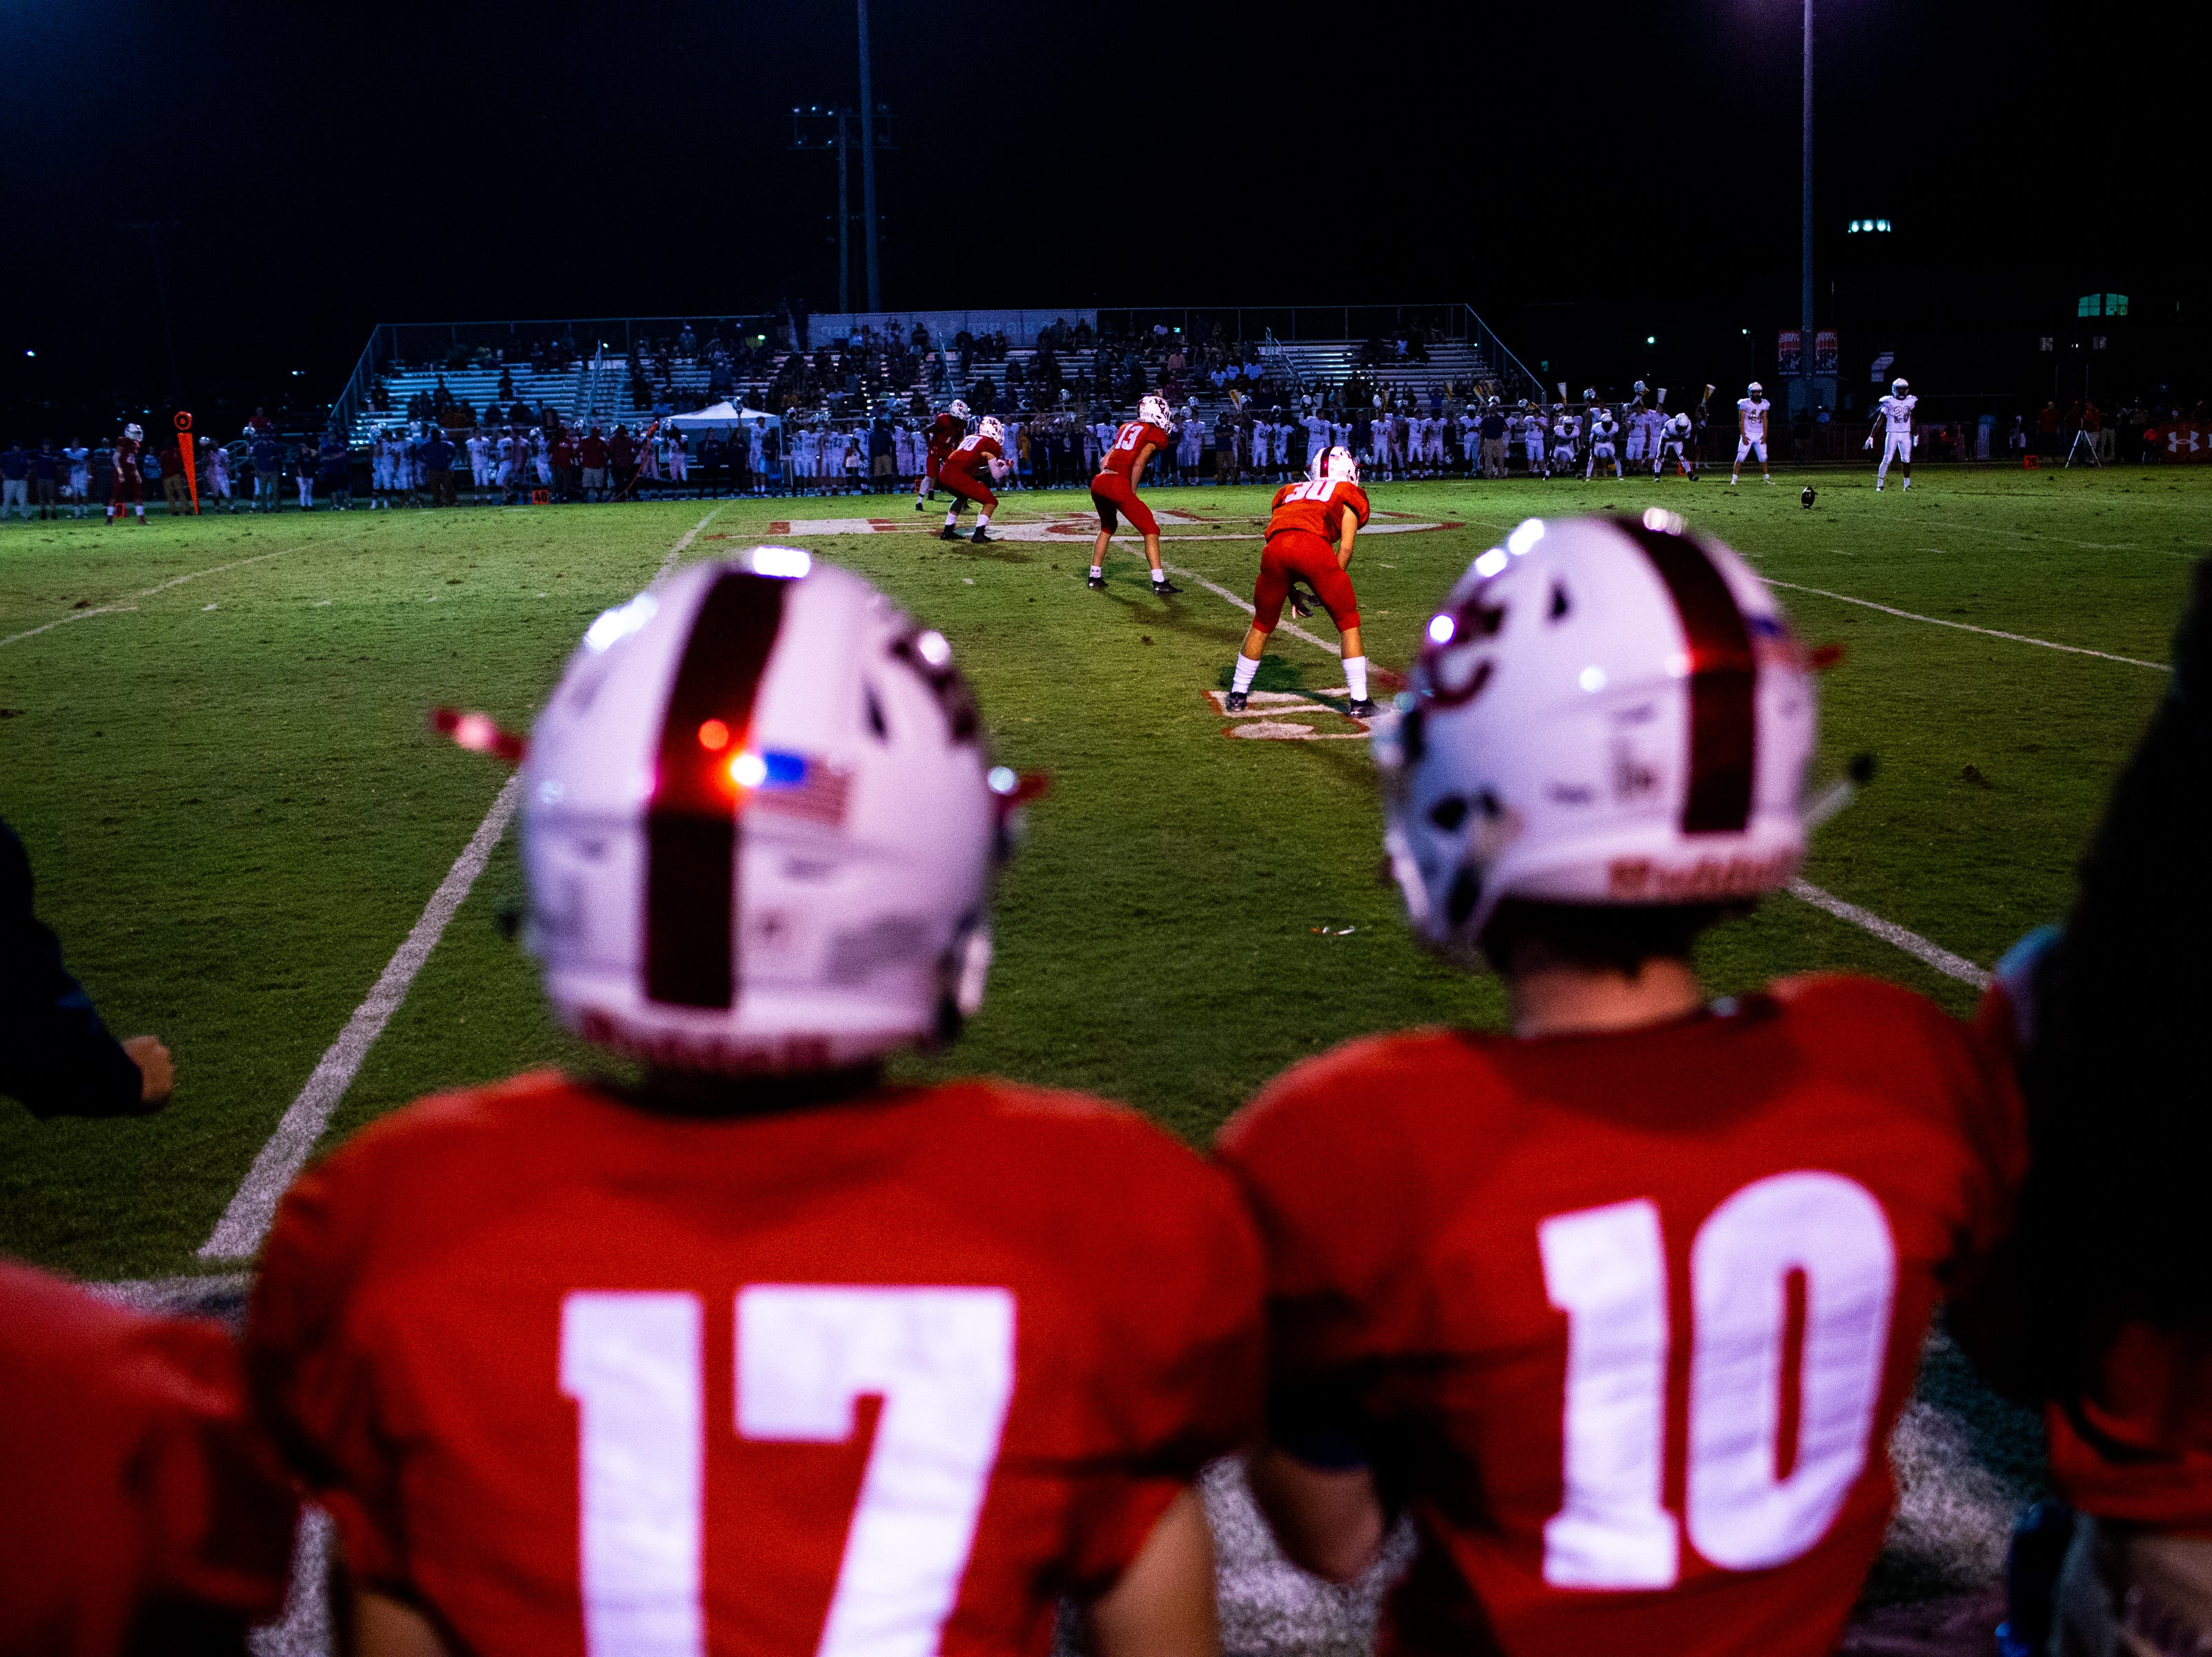 Henry County takes the field to start the second half at Henry County Friday, Sept. 14, 2018, in Paris, Tenn.